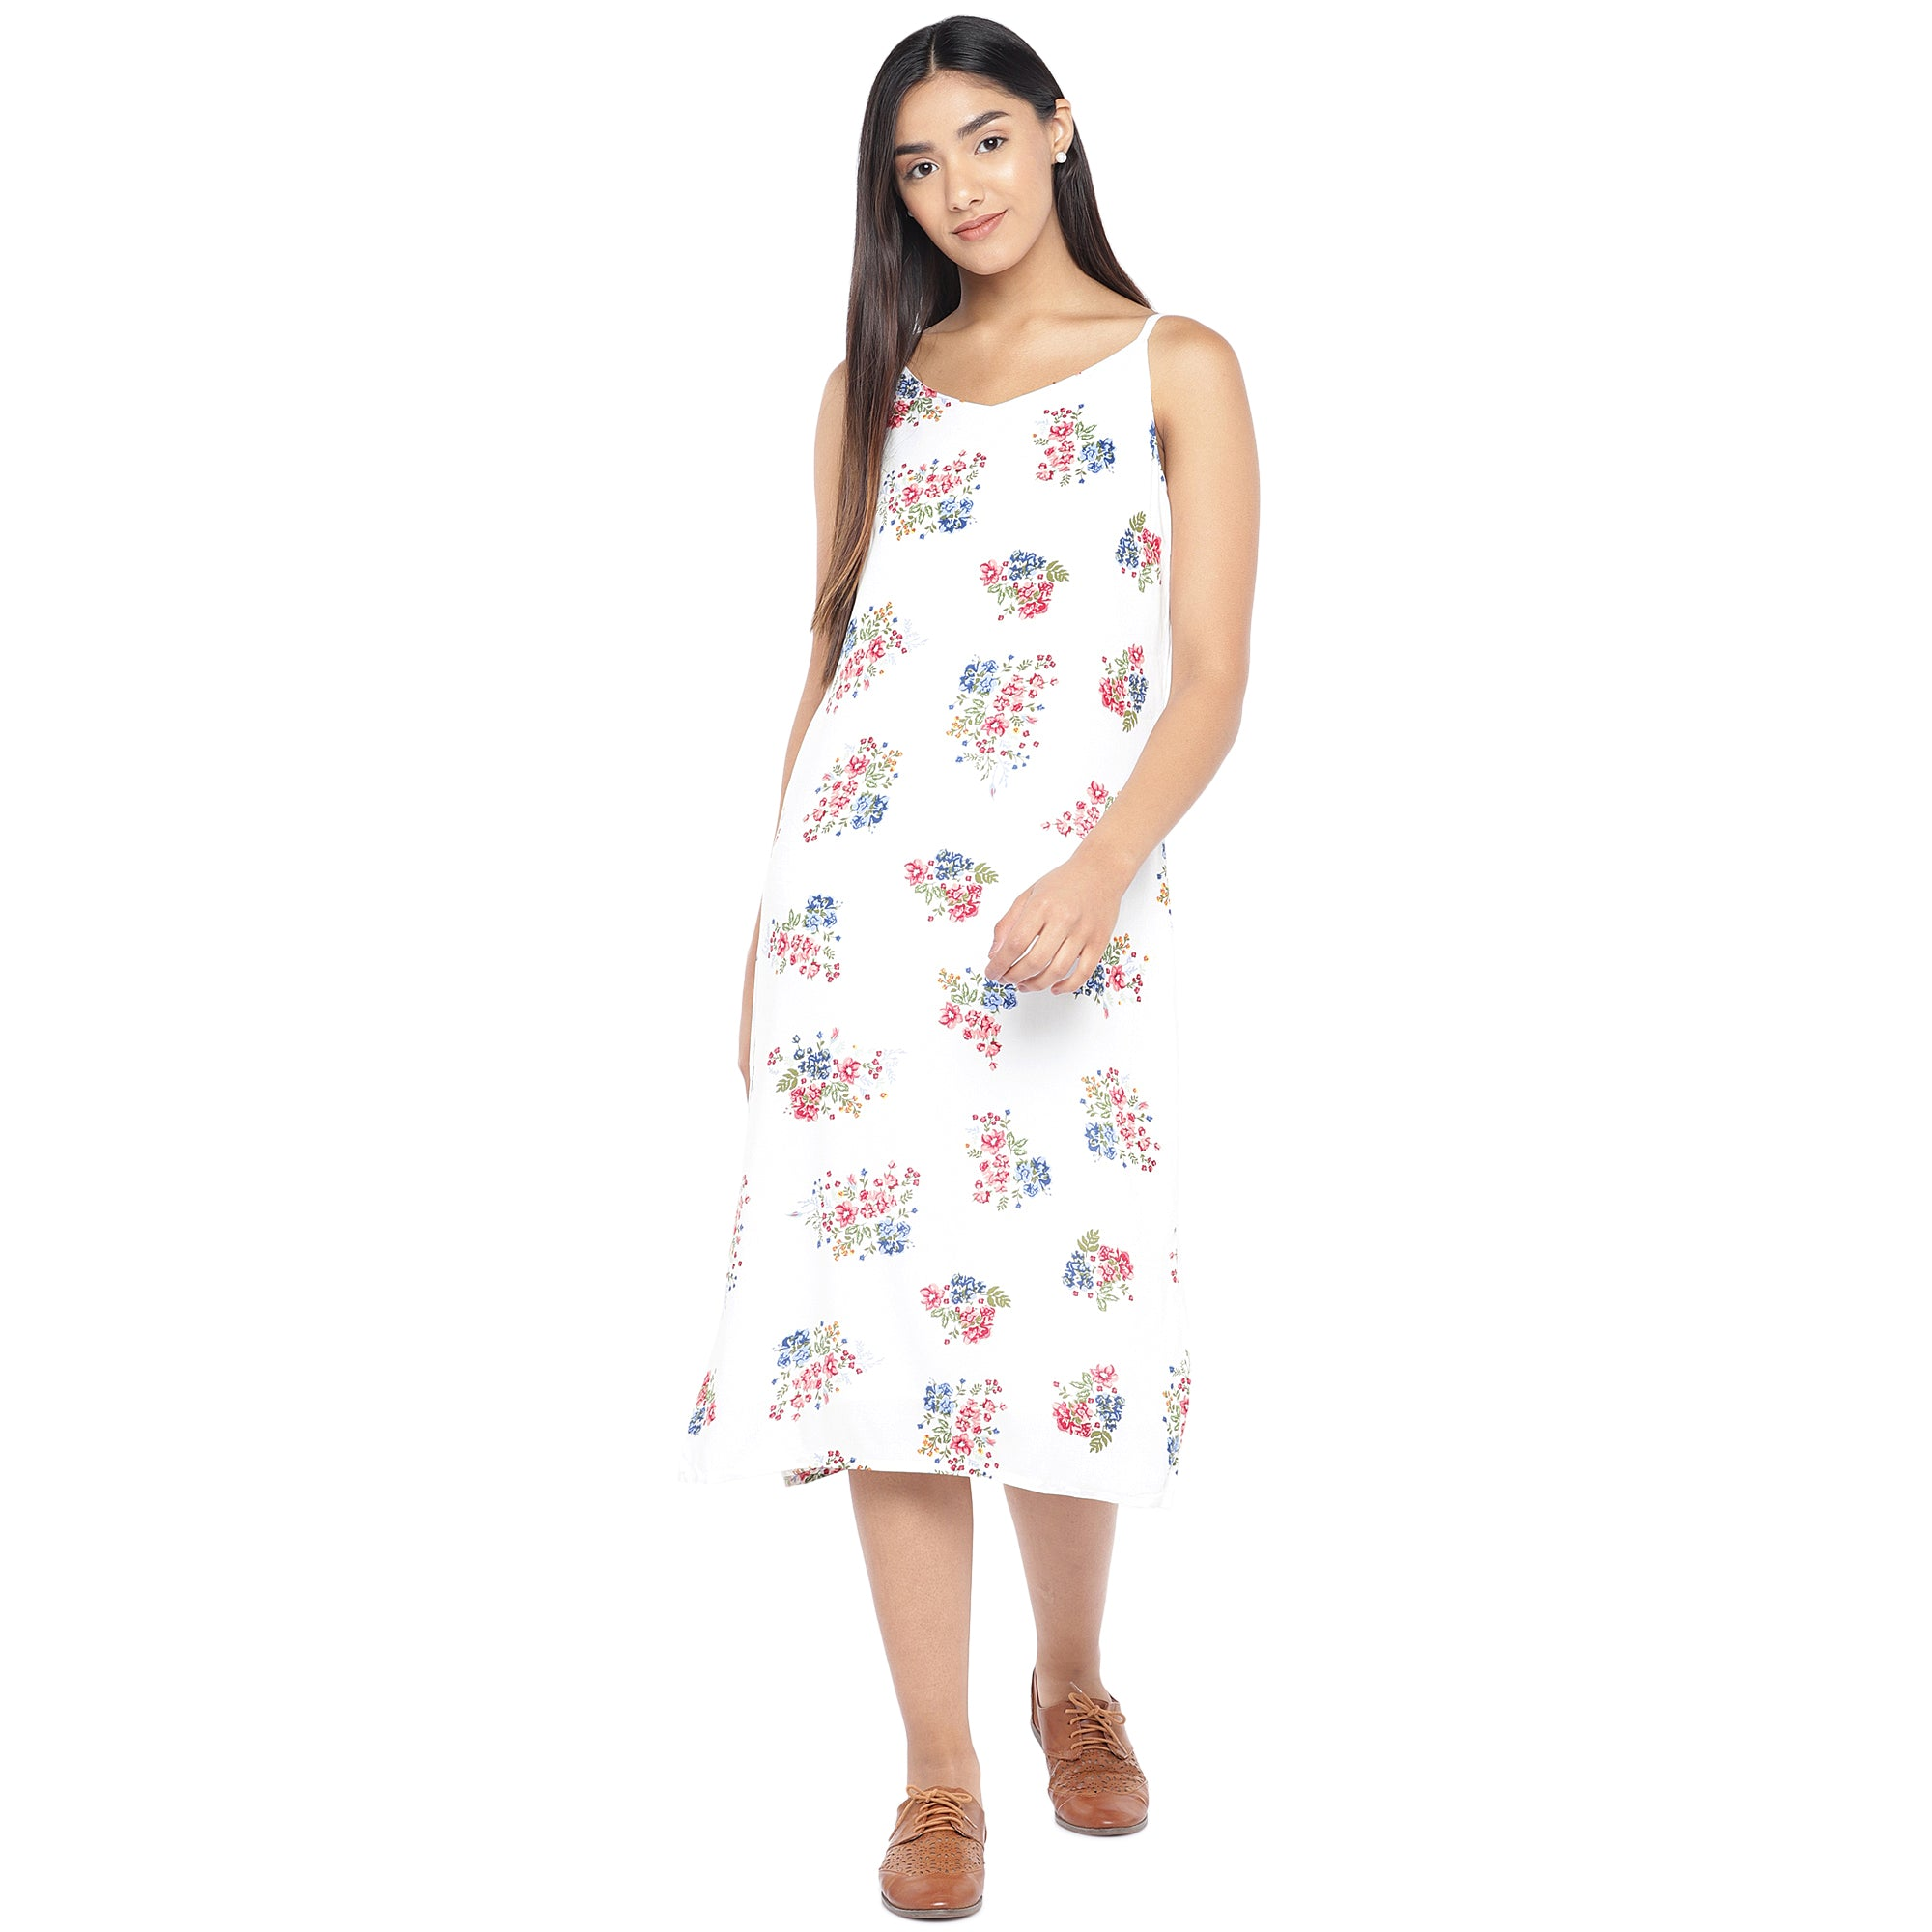 White & Pink Printed A-Line Dress-4